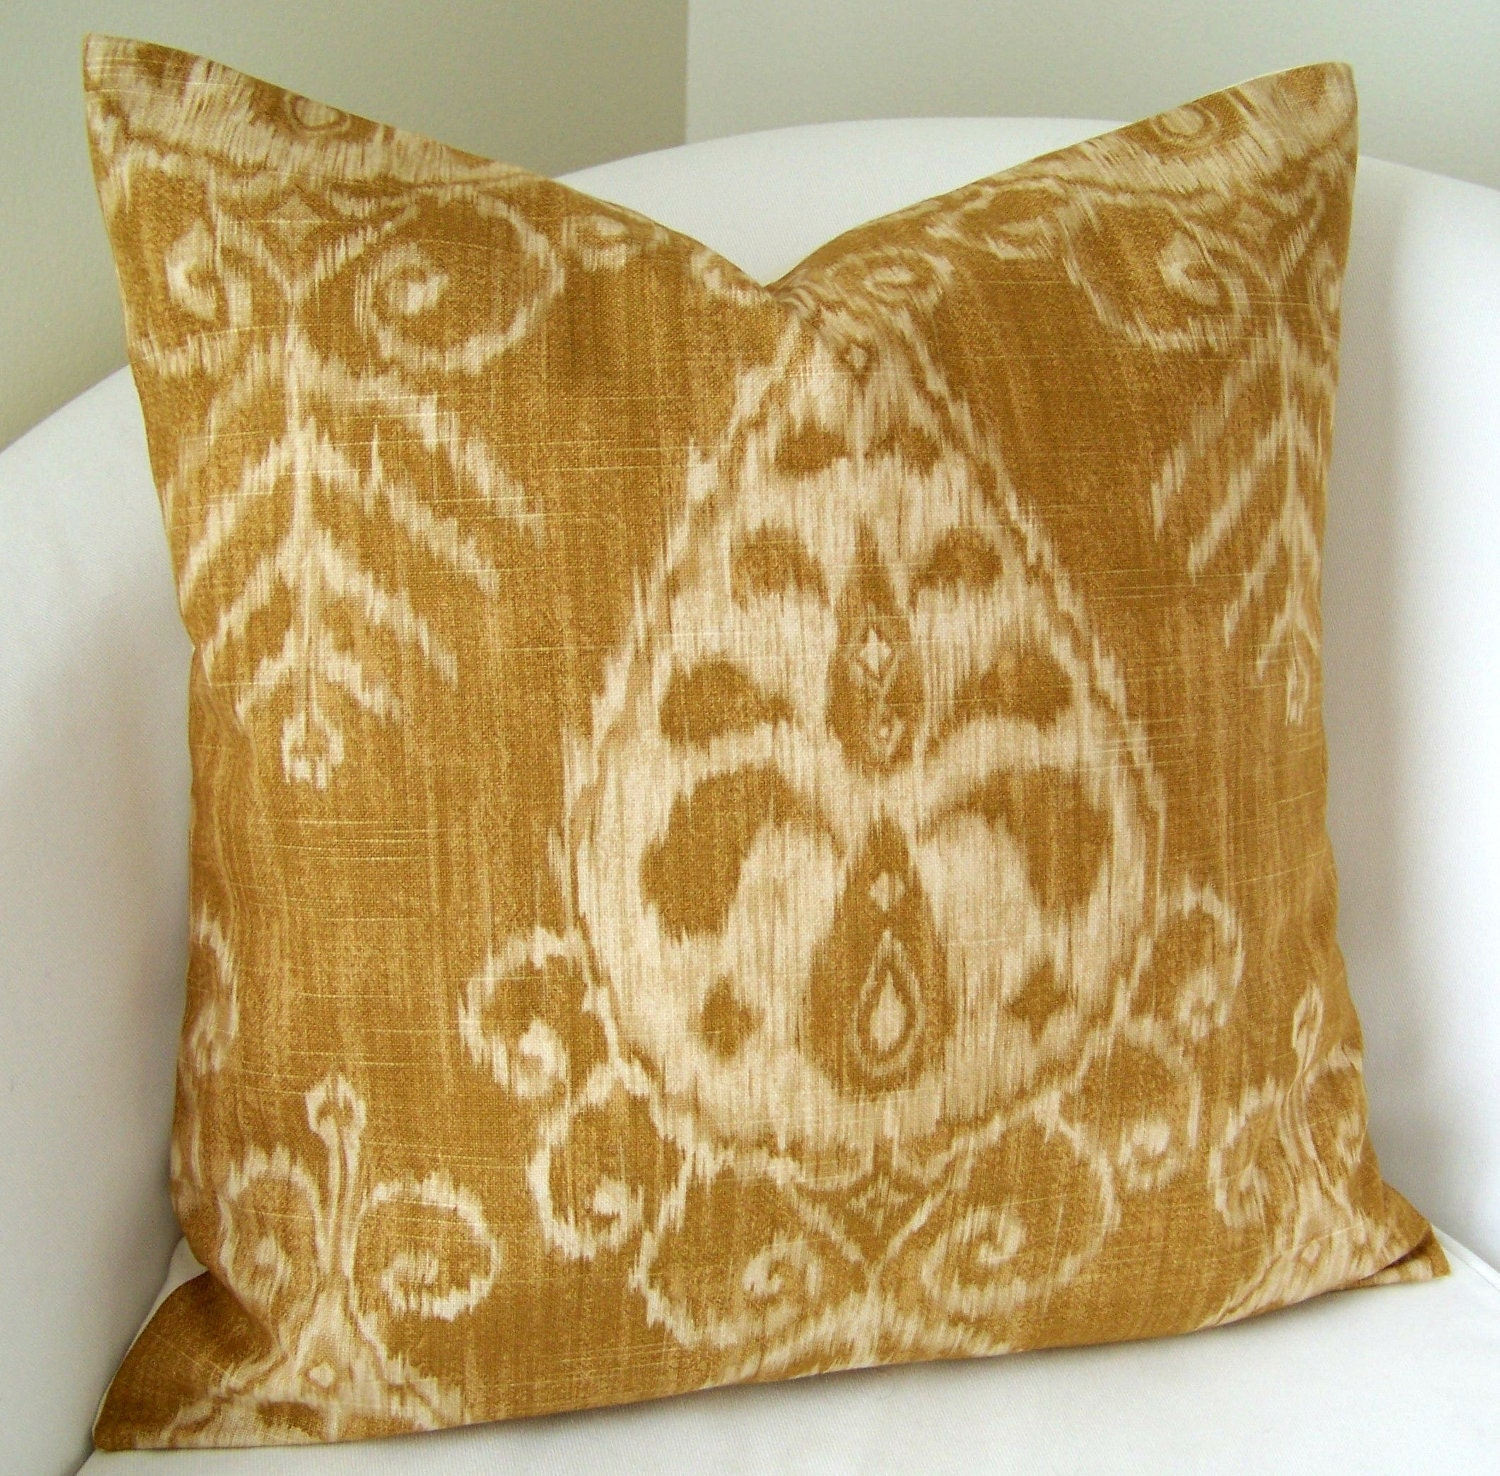 Throw Pillow Covers 20x20 : Decorative Throw Pillow Cover Gold Ikat Pillow 20x20 Inch